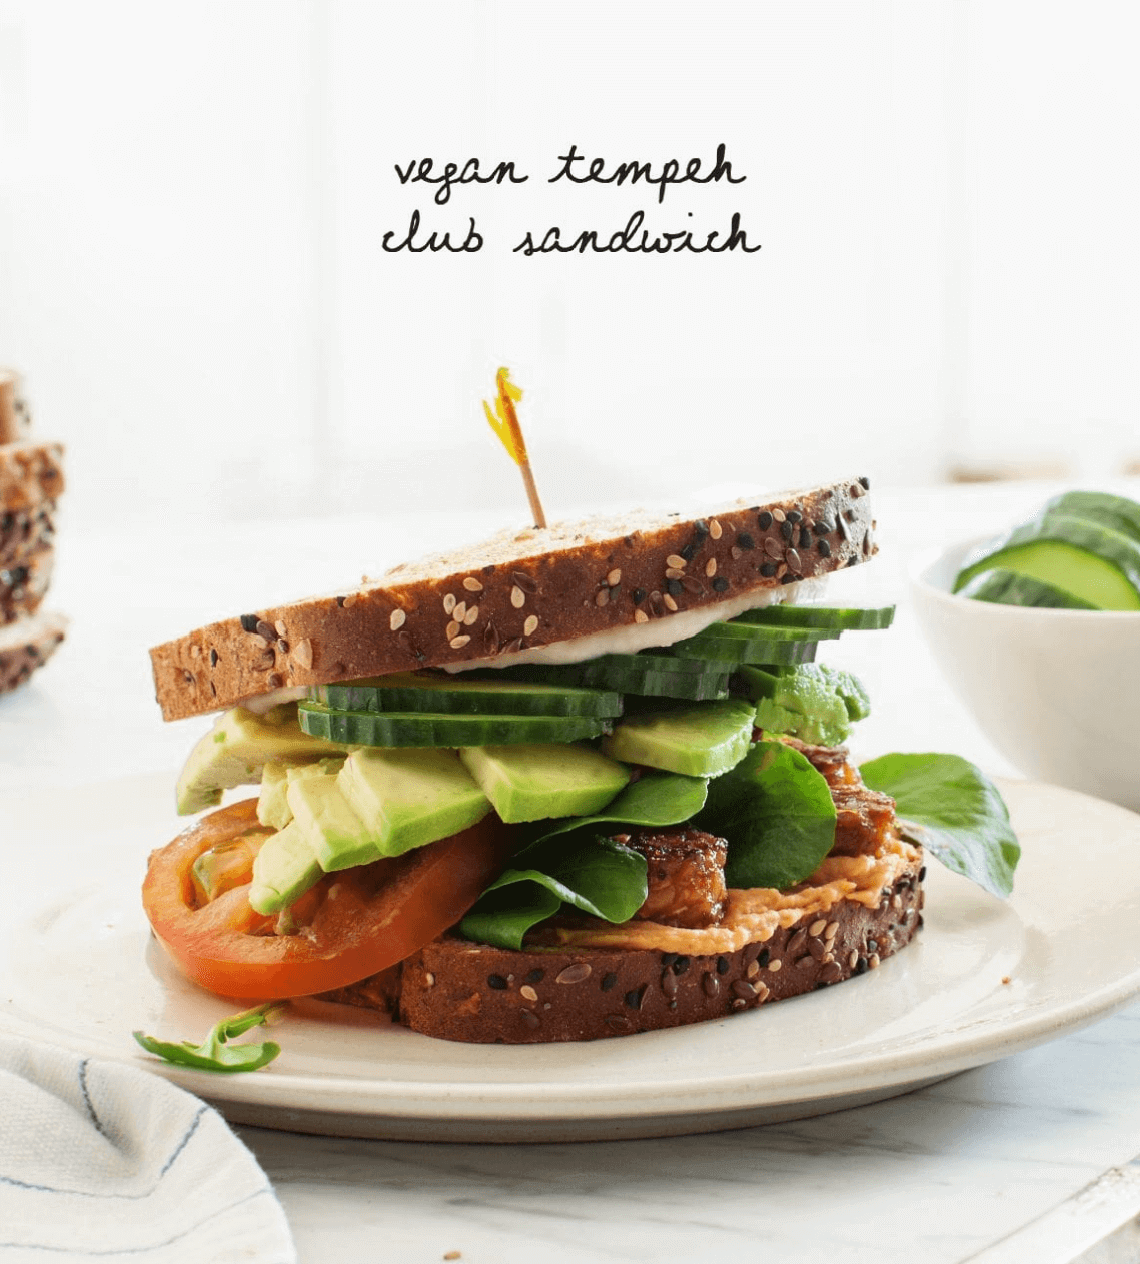 lunch ideas that are healthy